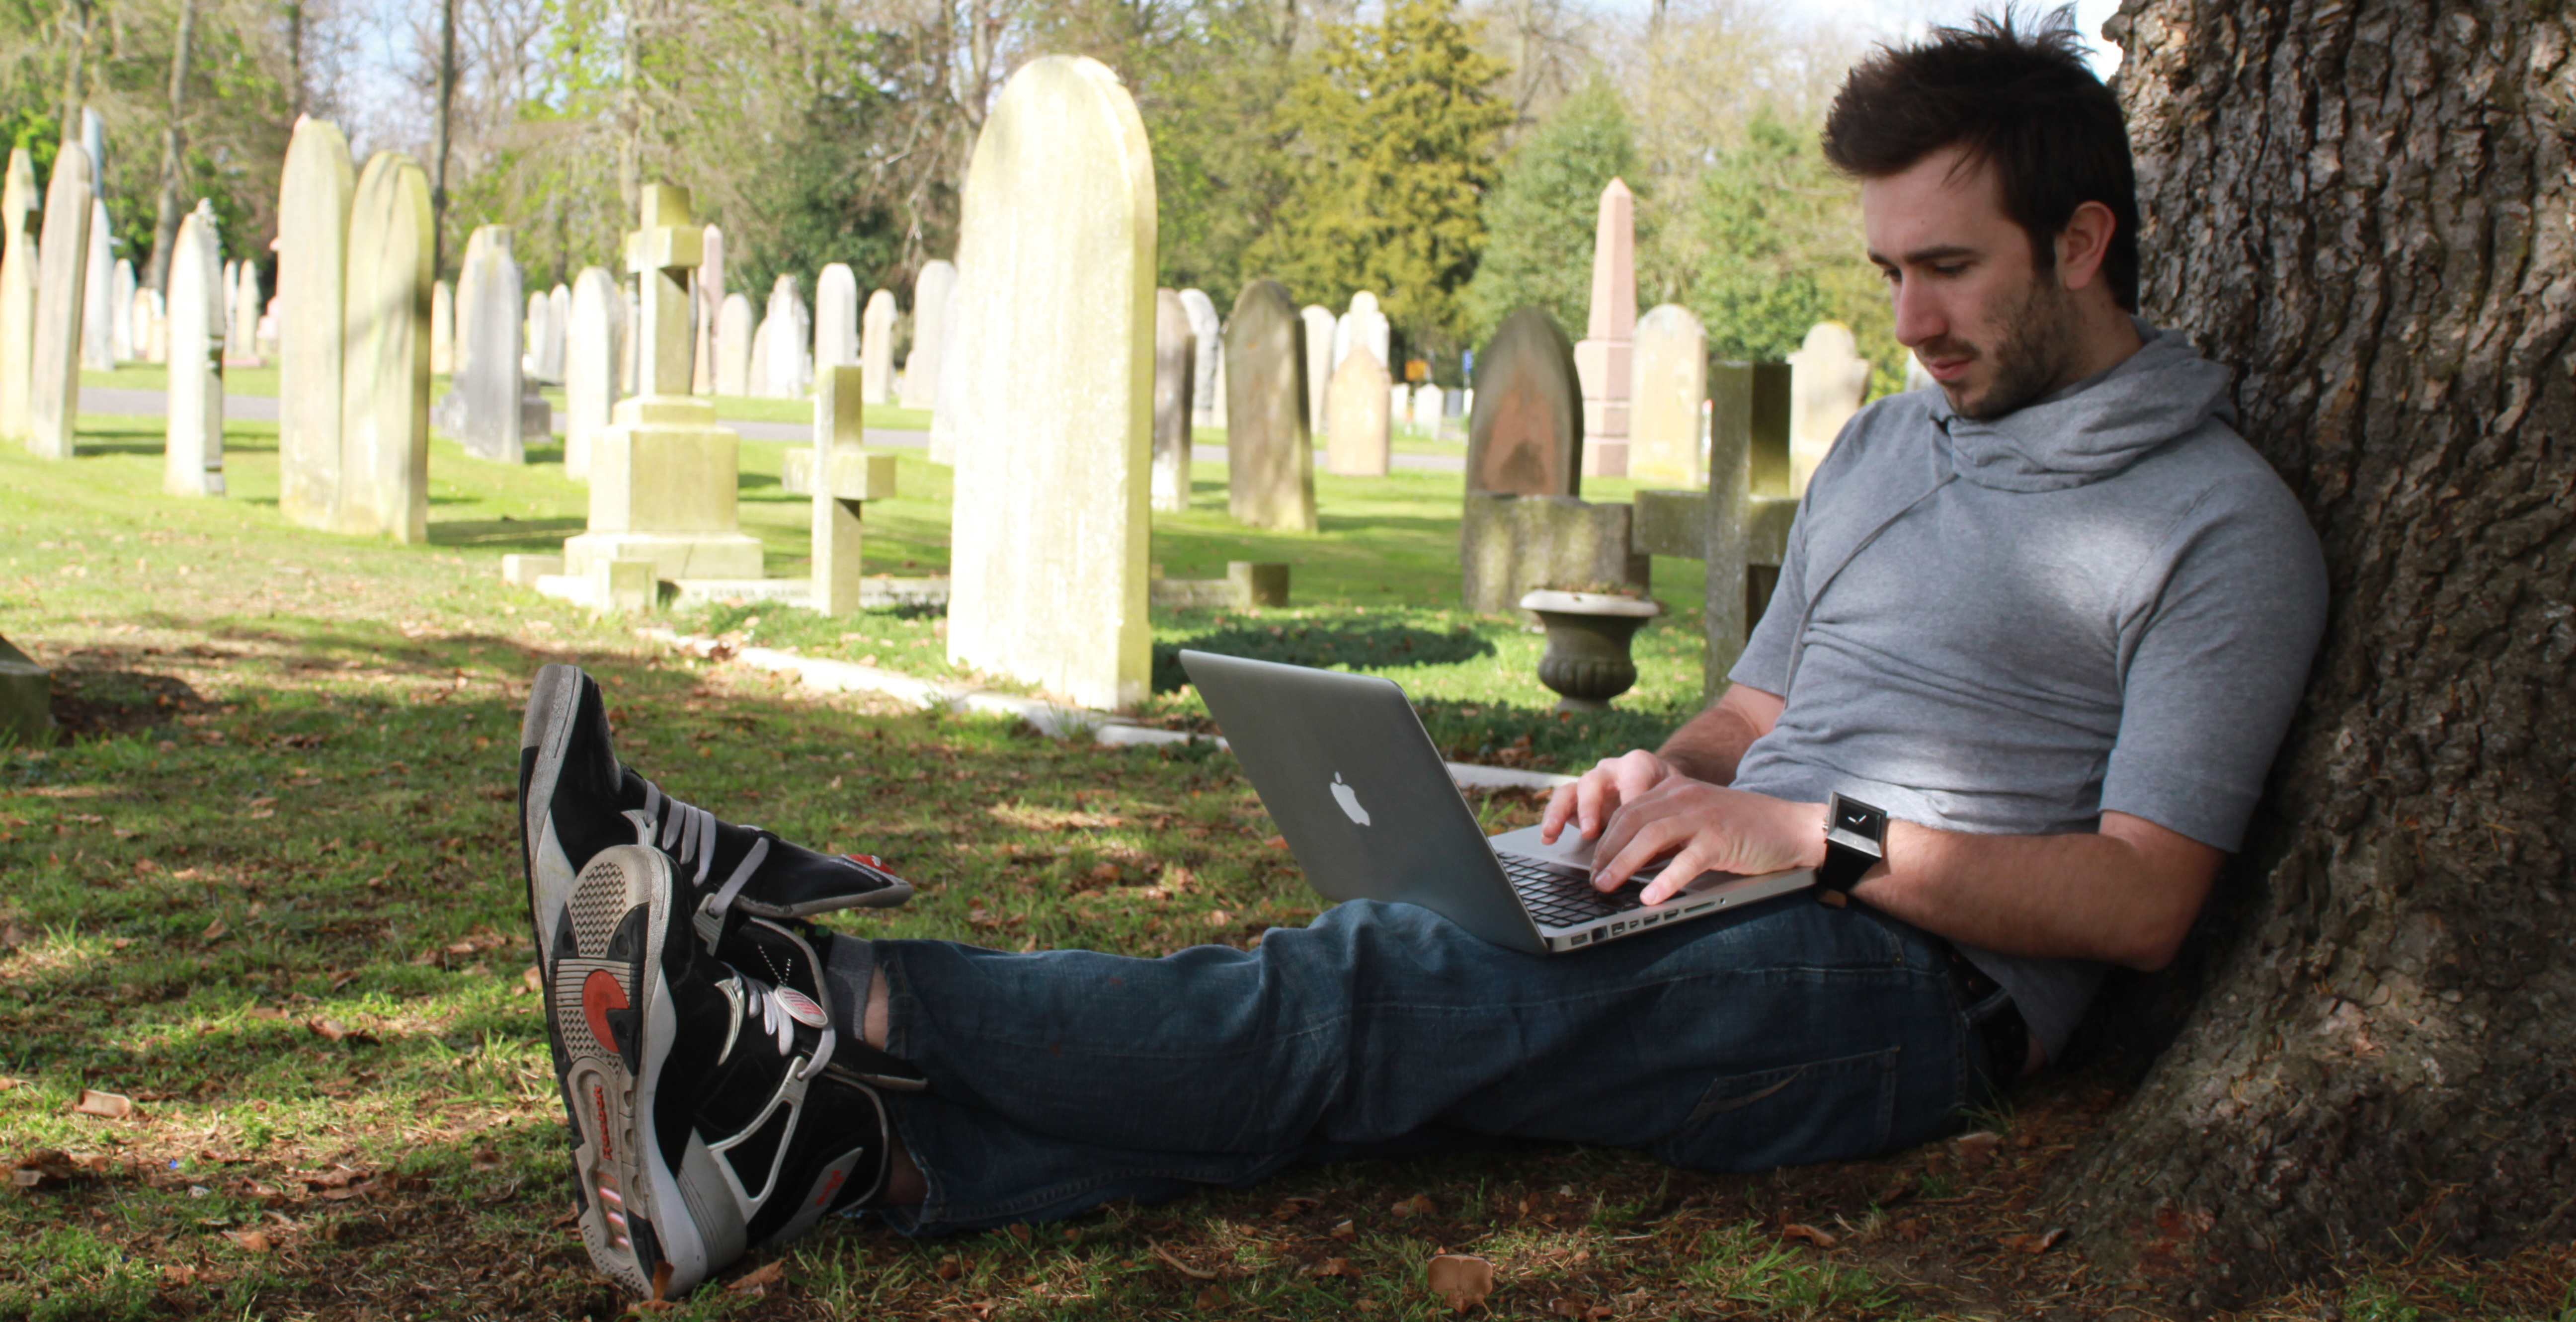 Living users can set up an account with DeadSocial and schedule posts for particular dates after they have died. (Photo by Tugba Tirpan)